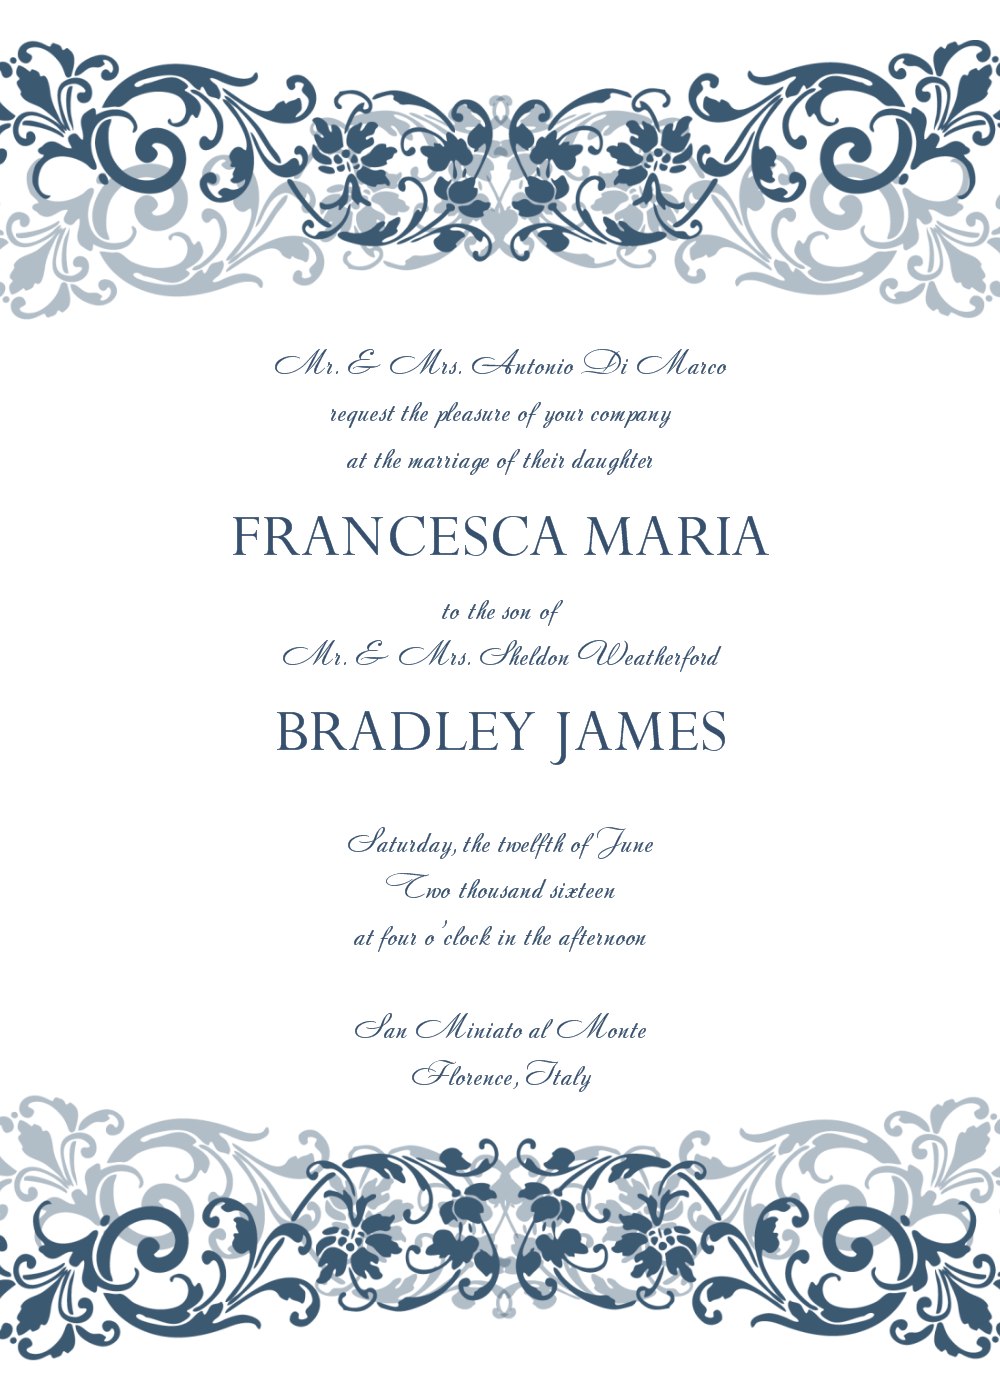 Elegant Wedding Invitation Templates Of Wedding Invitation Designed